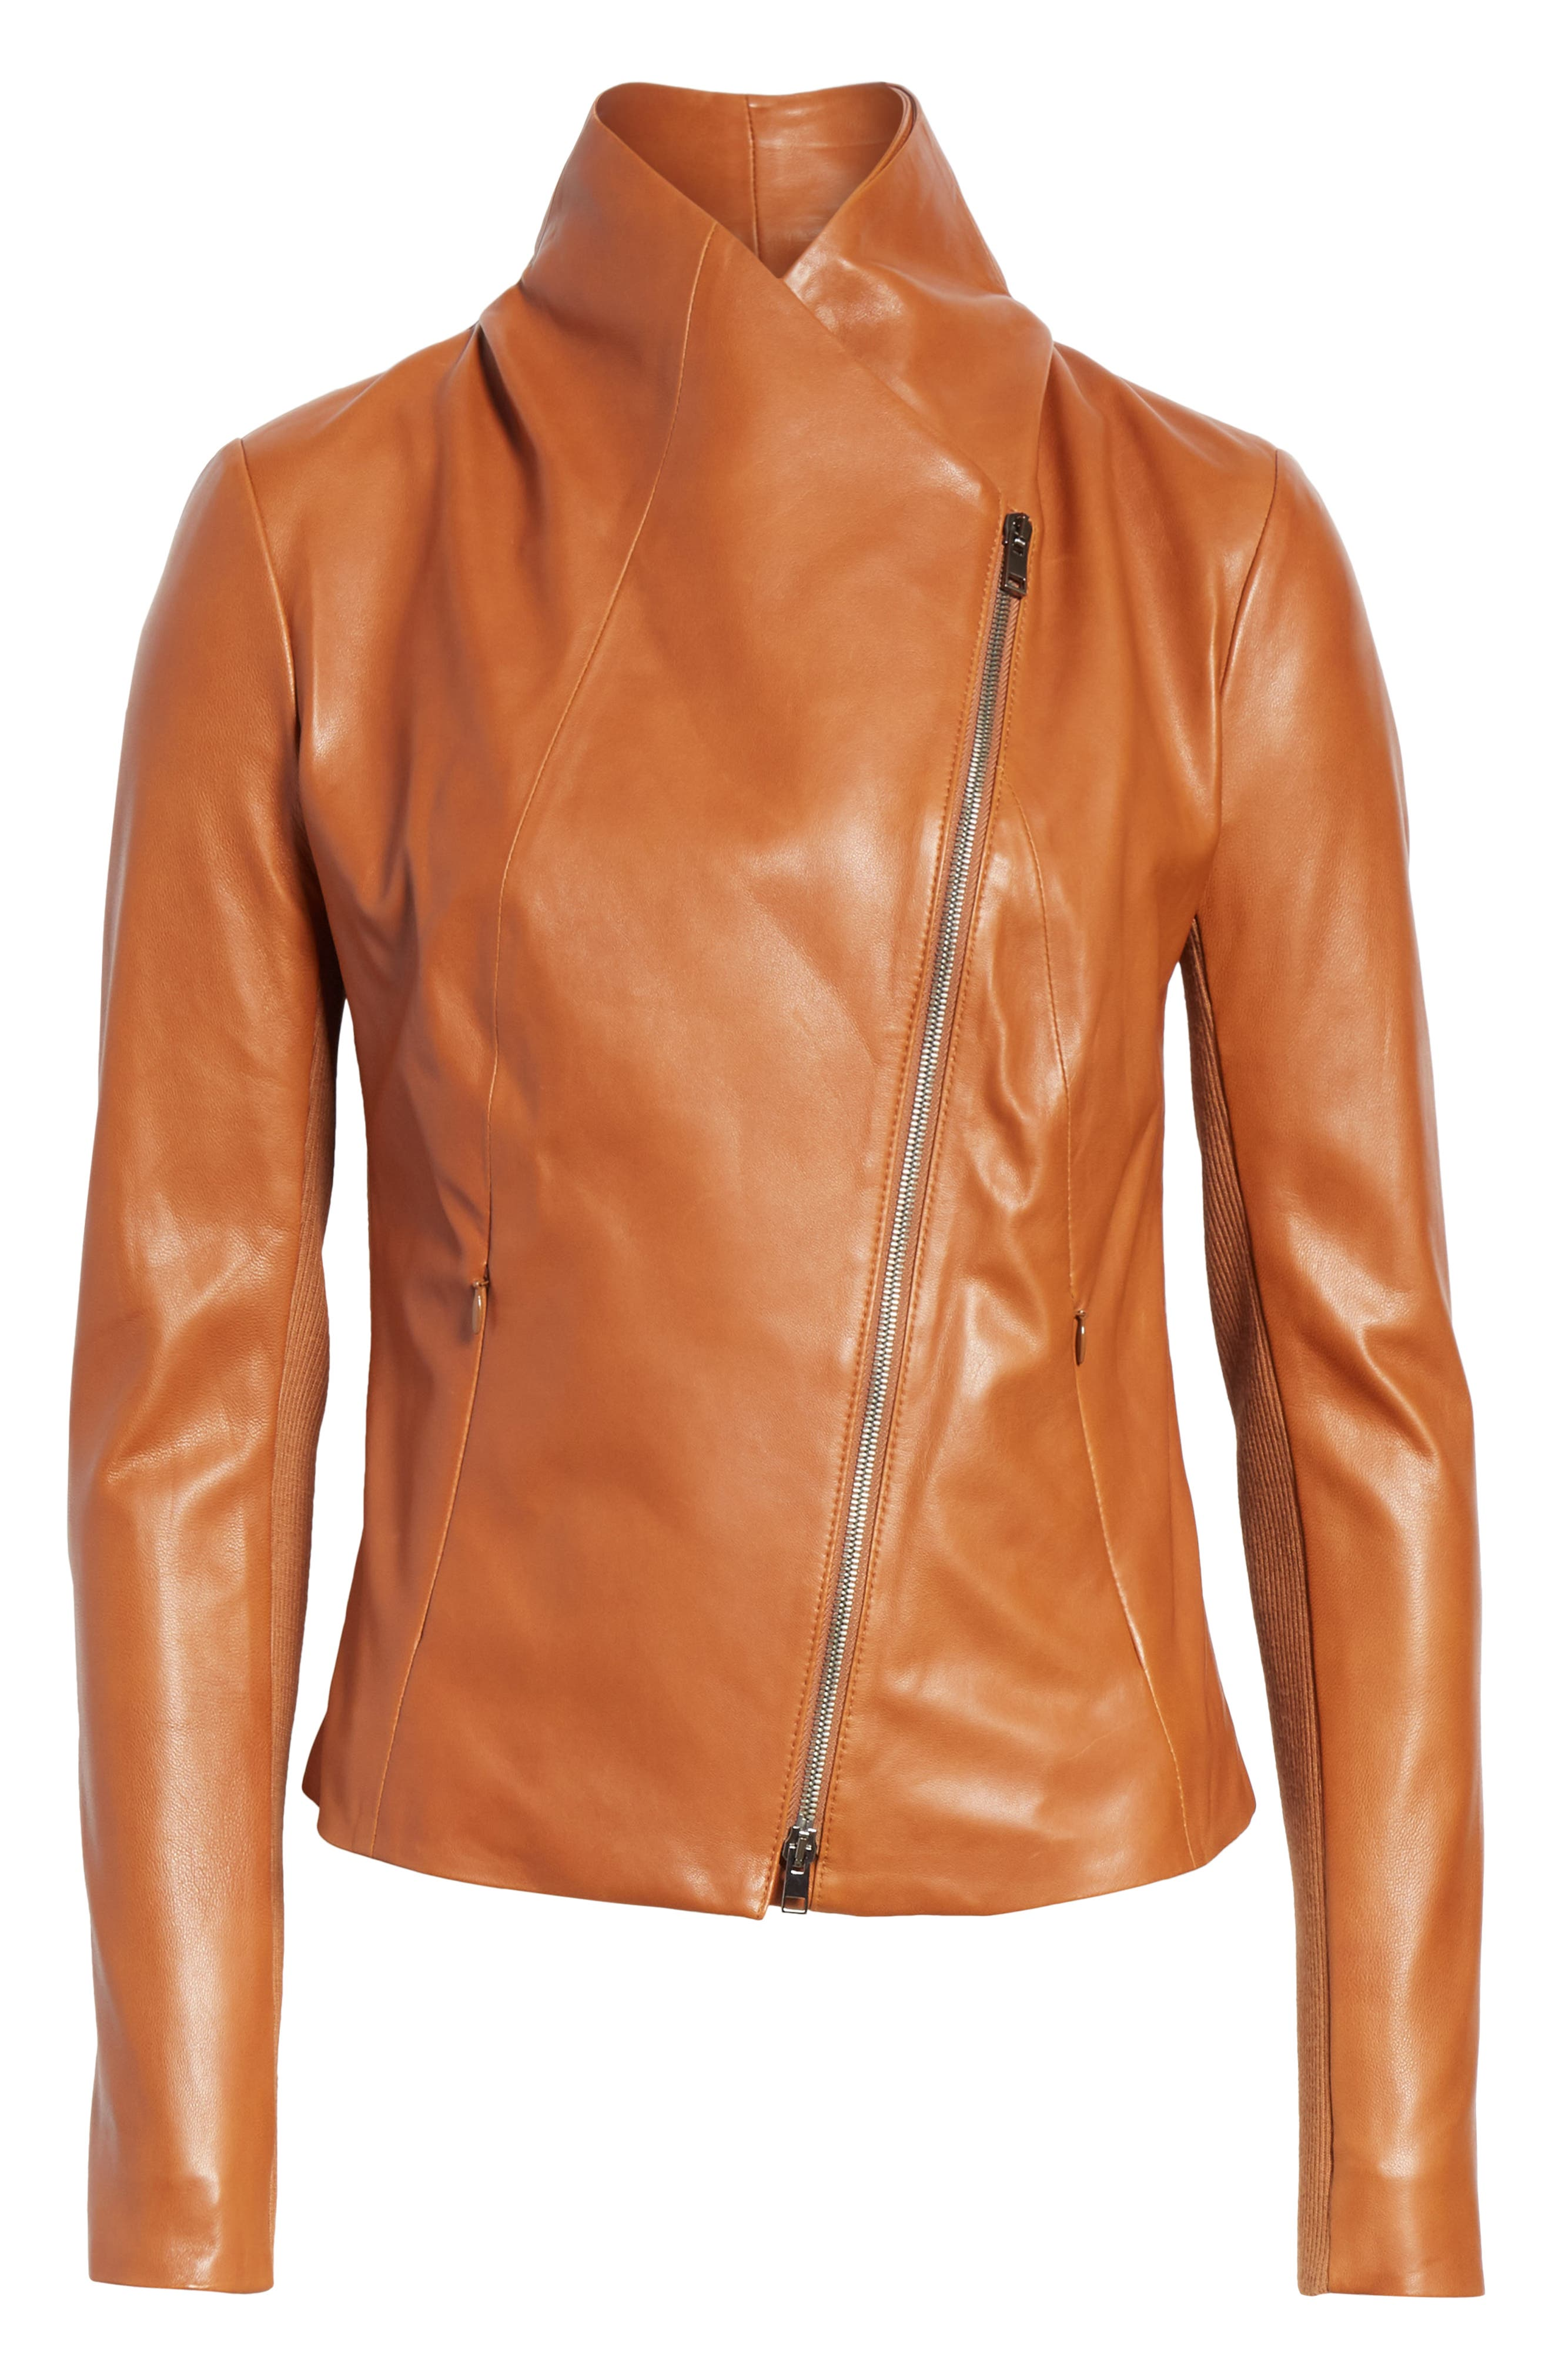 Stand Collar Leather Jacket,                             Alternate thumbnail 6, color,                             RUST BISQUE